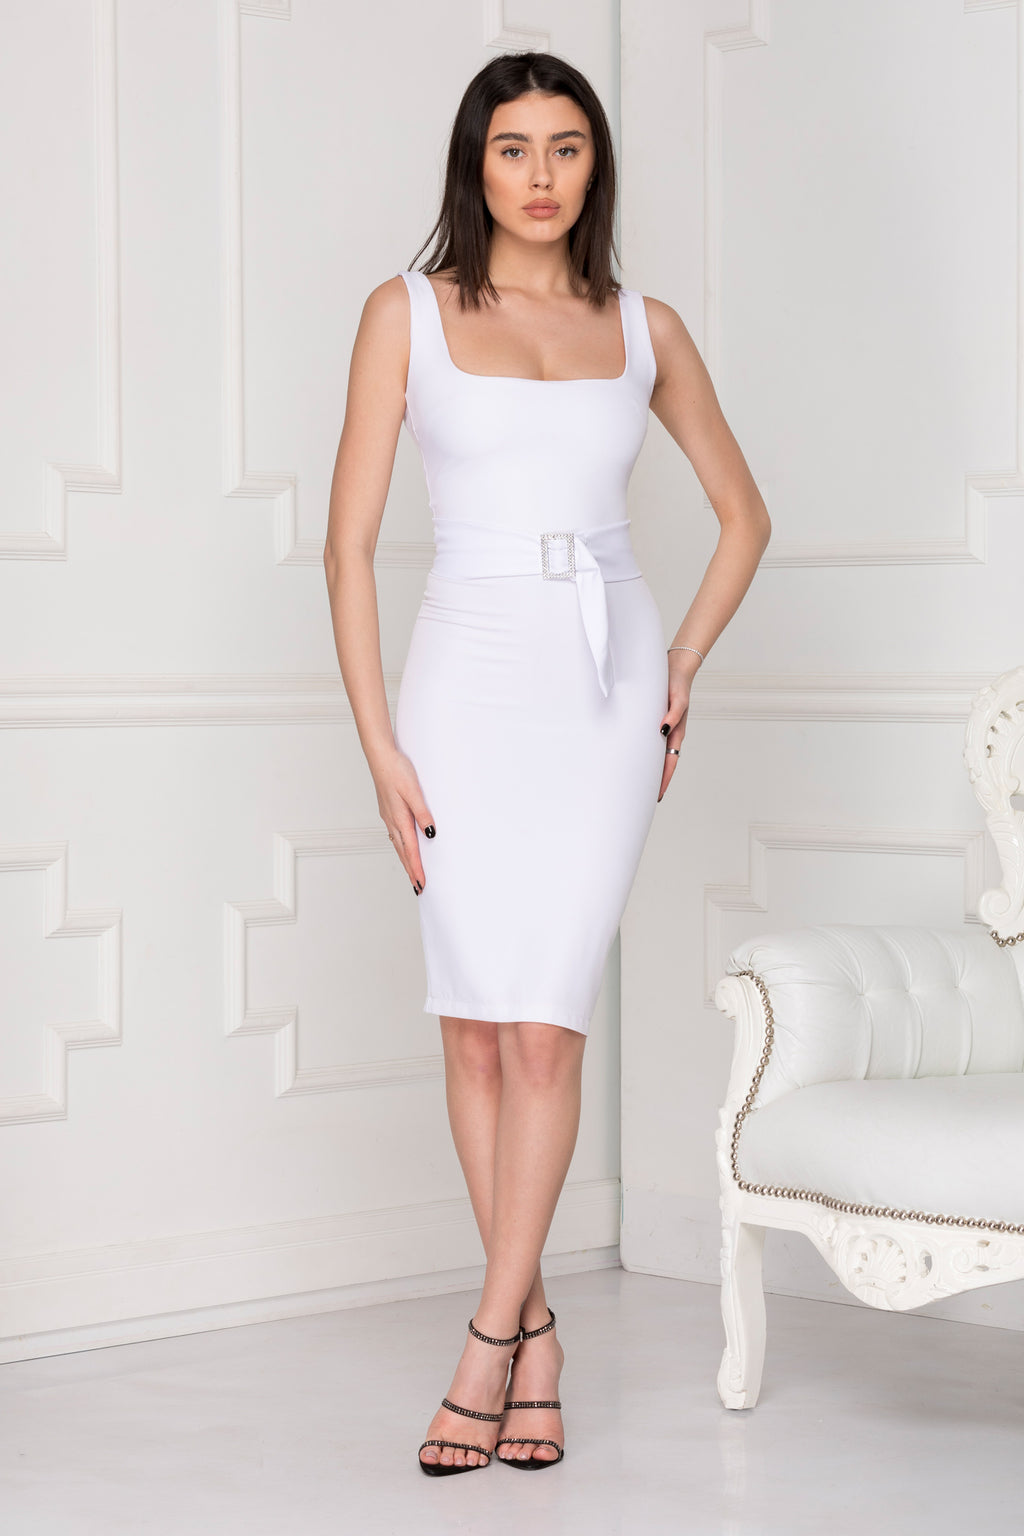 White basic dress full body.